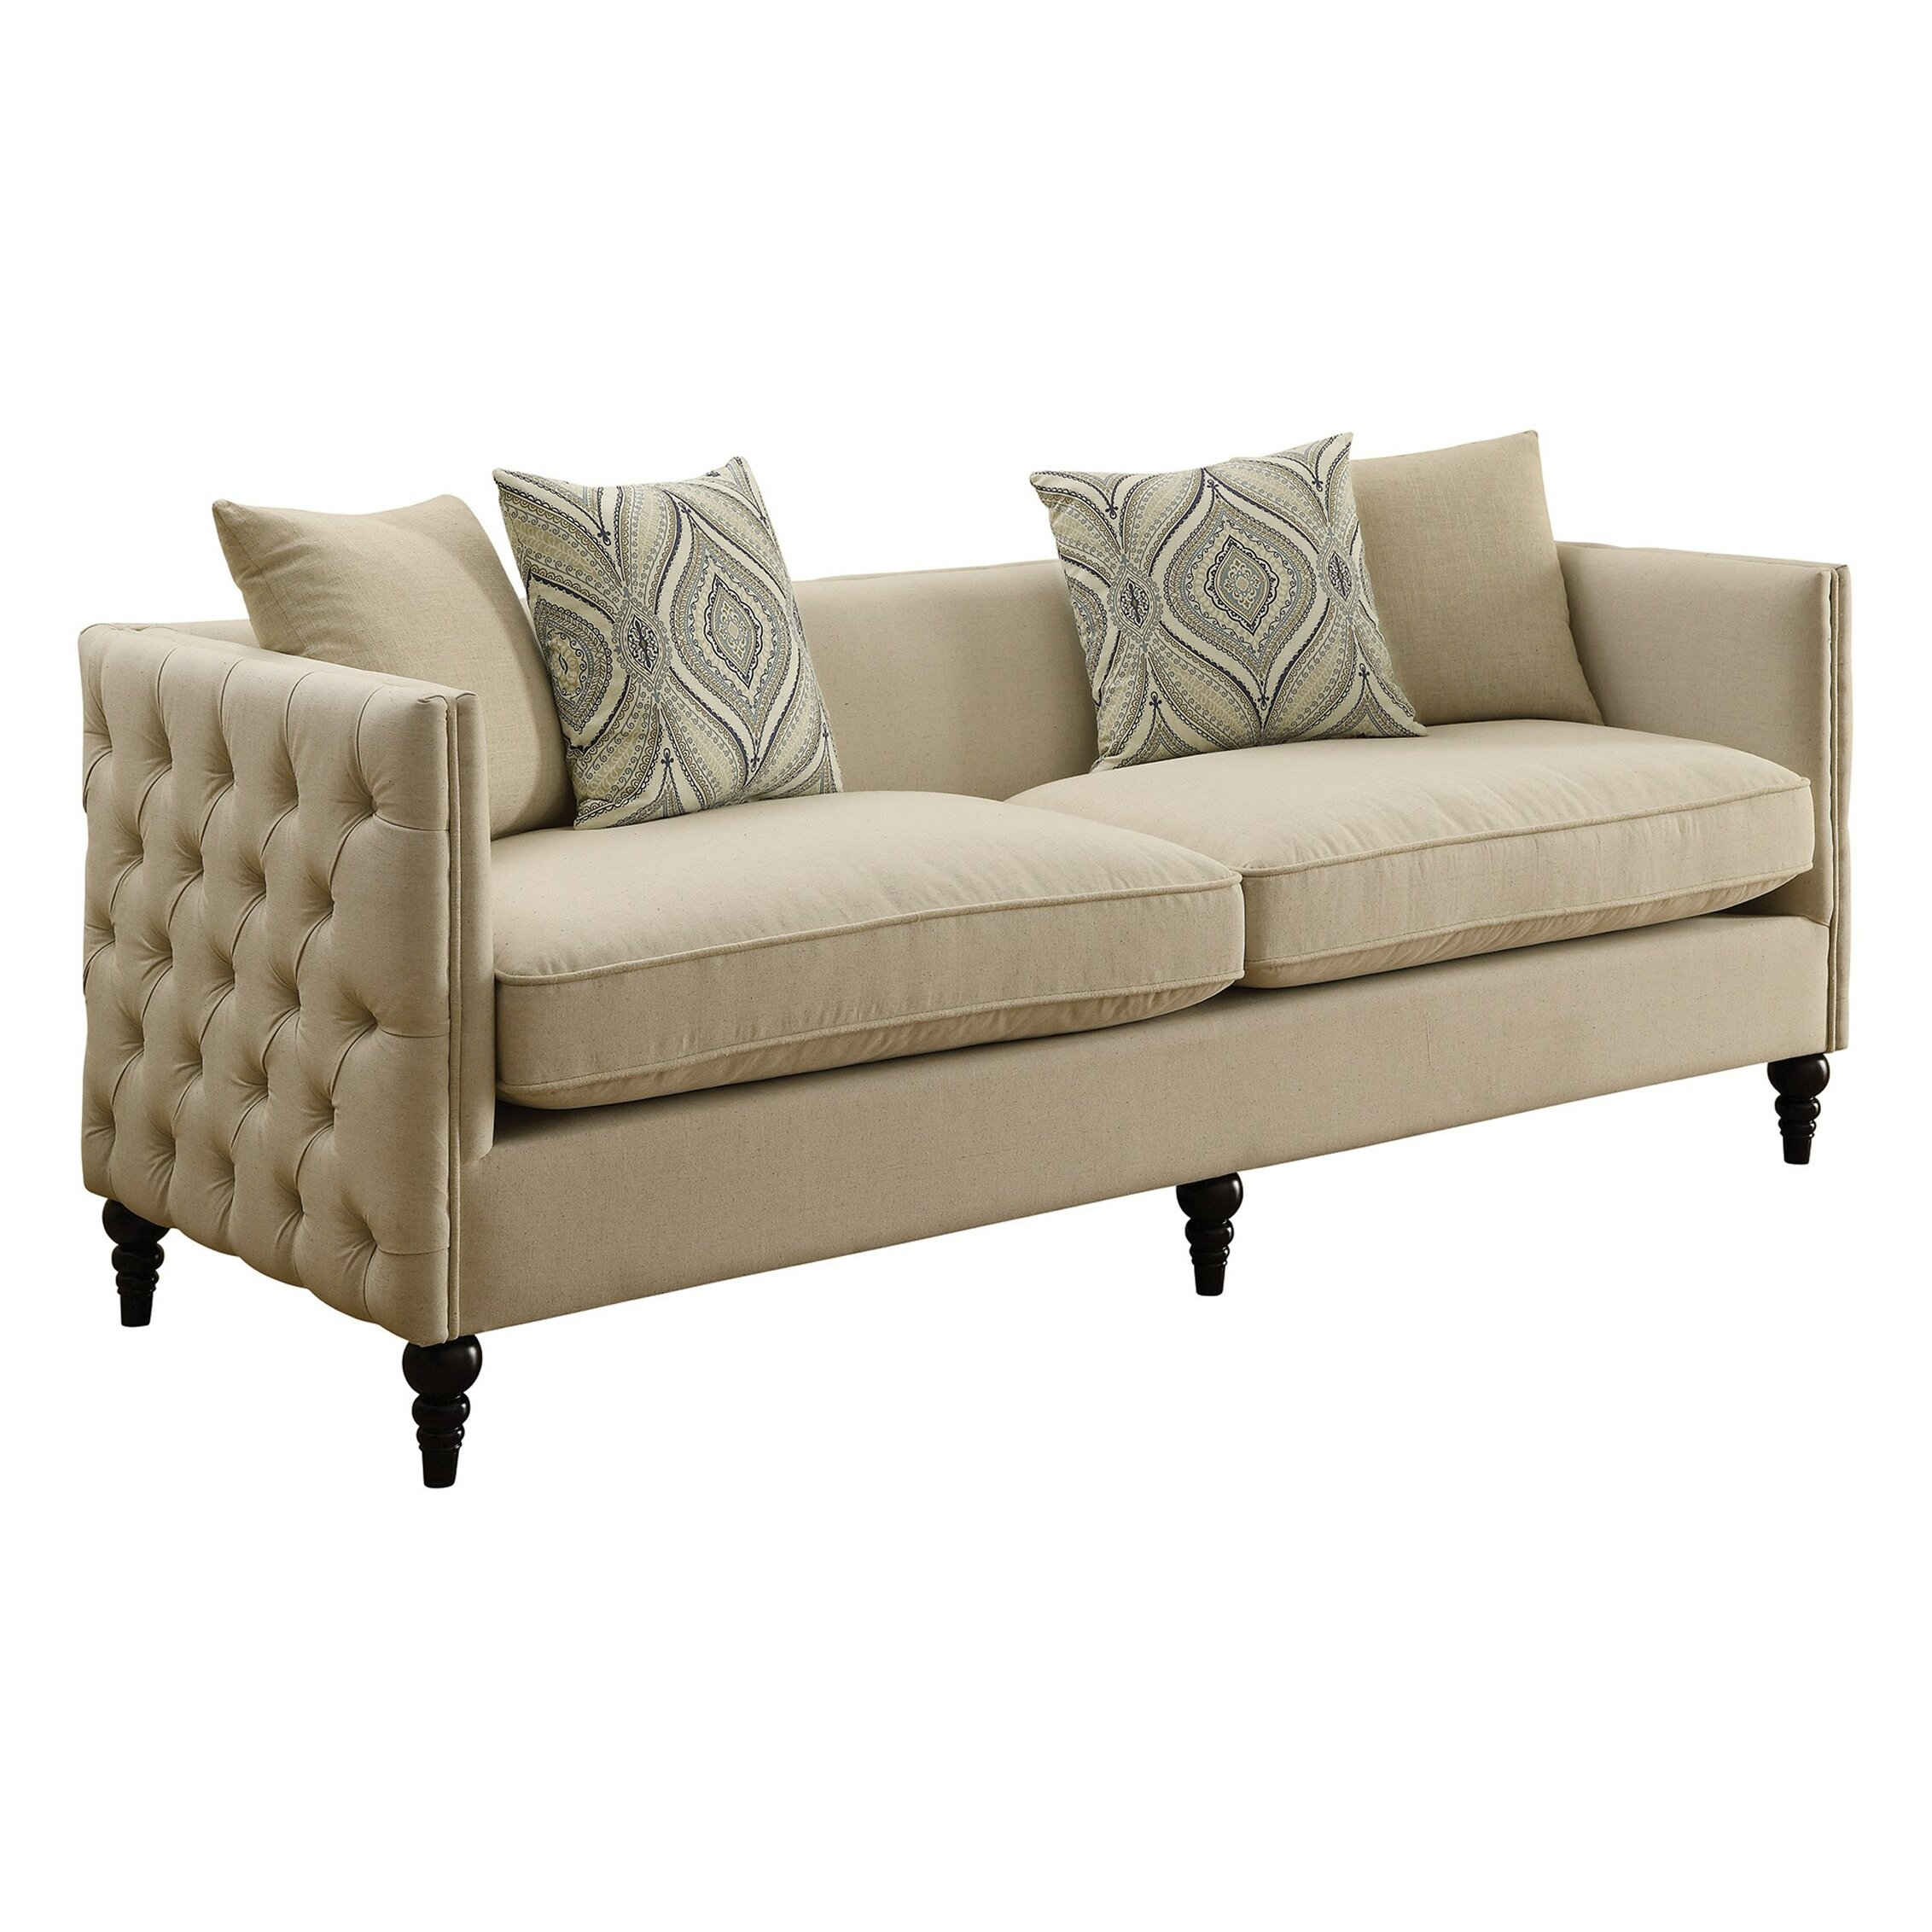 Infini furnishings new rochelle sofa and loveseat set wayfair Sofa loveseat